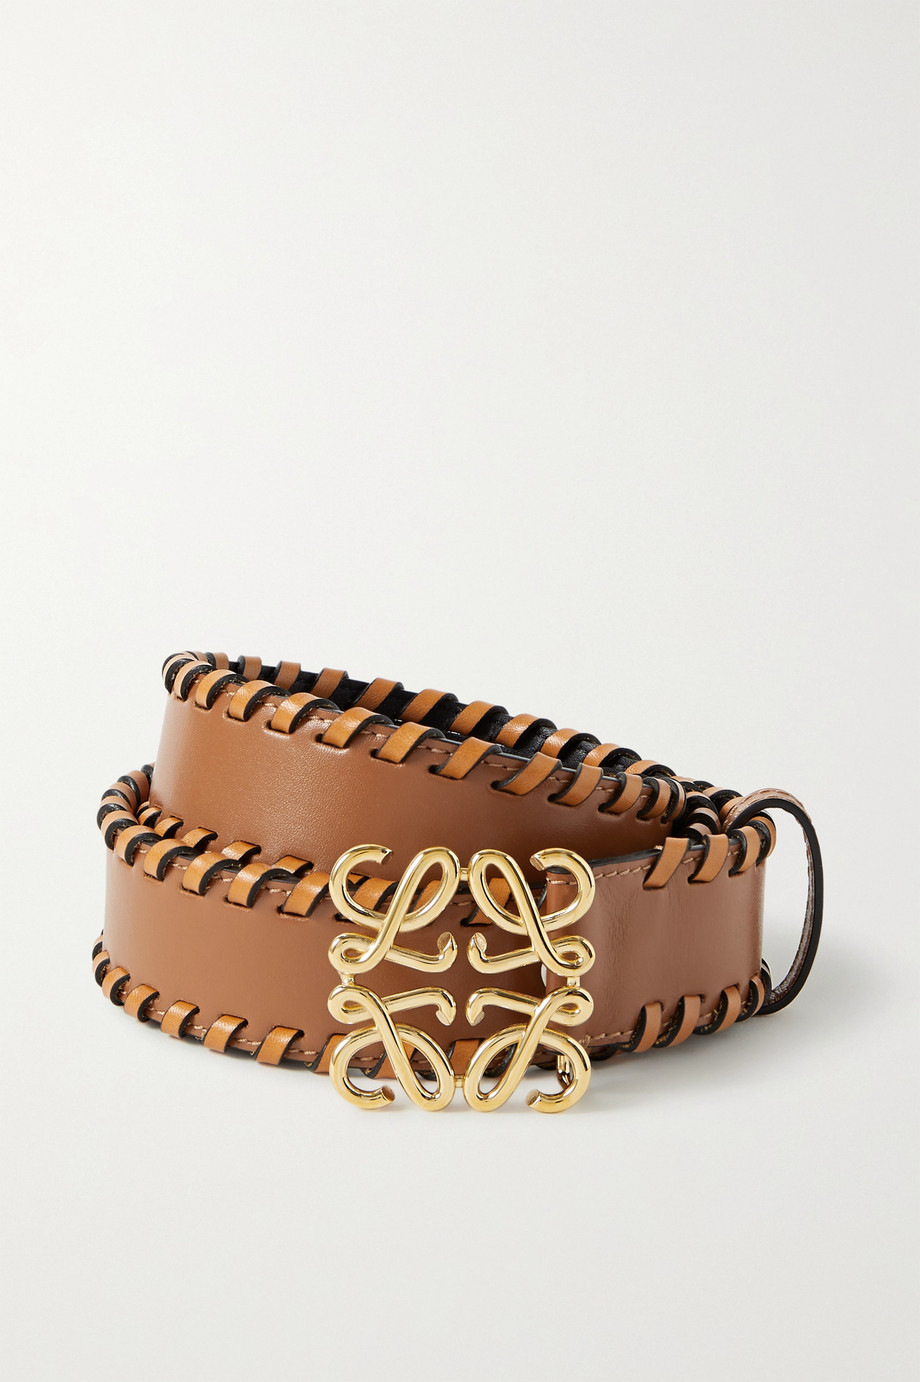 Loewe Whipstitched leather belt